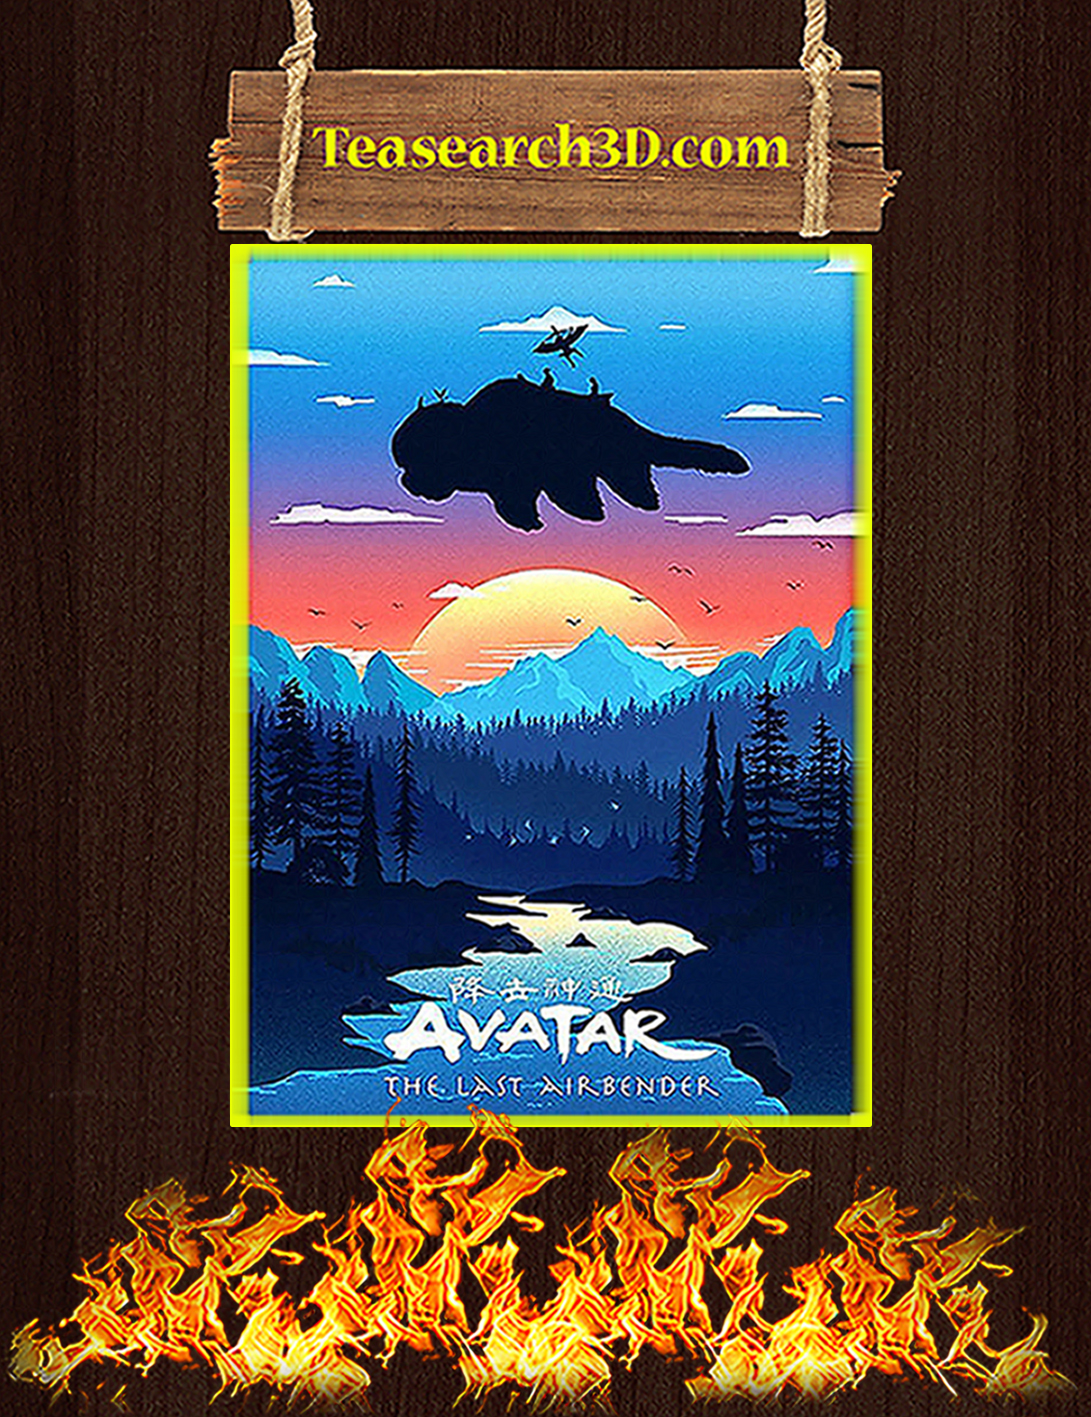 Avatar the last airbender poster A2